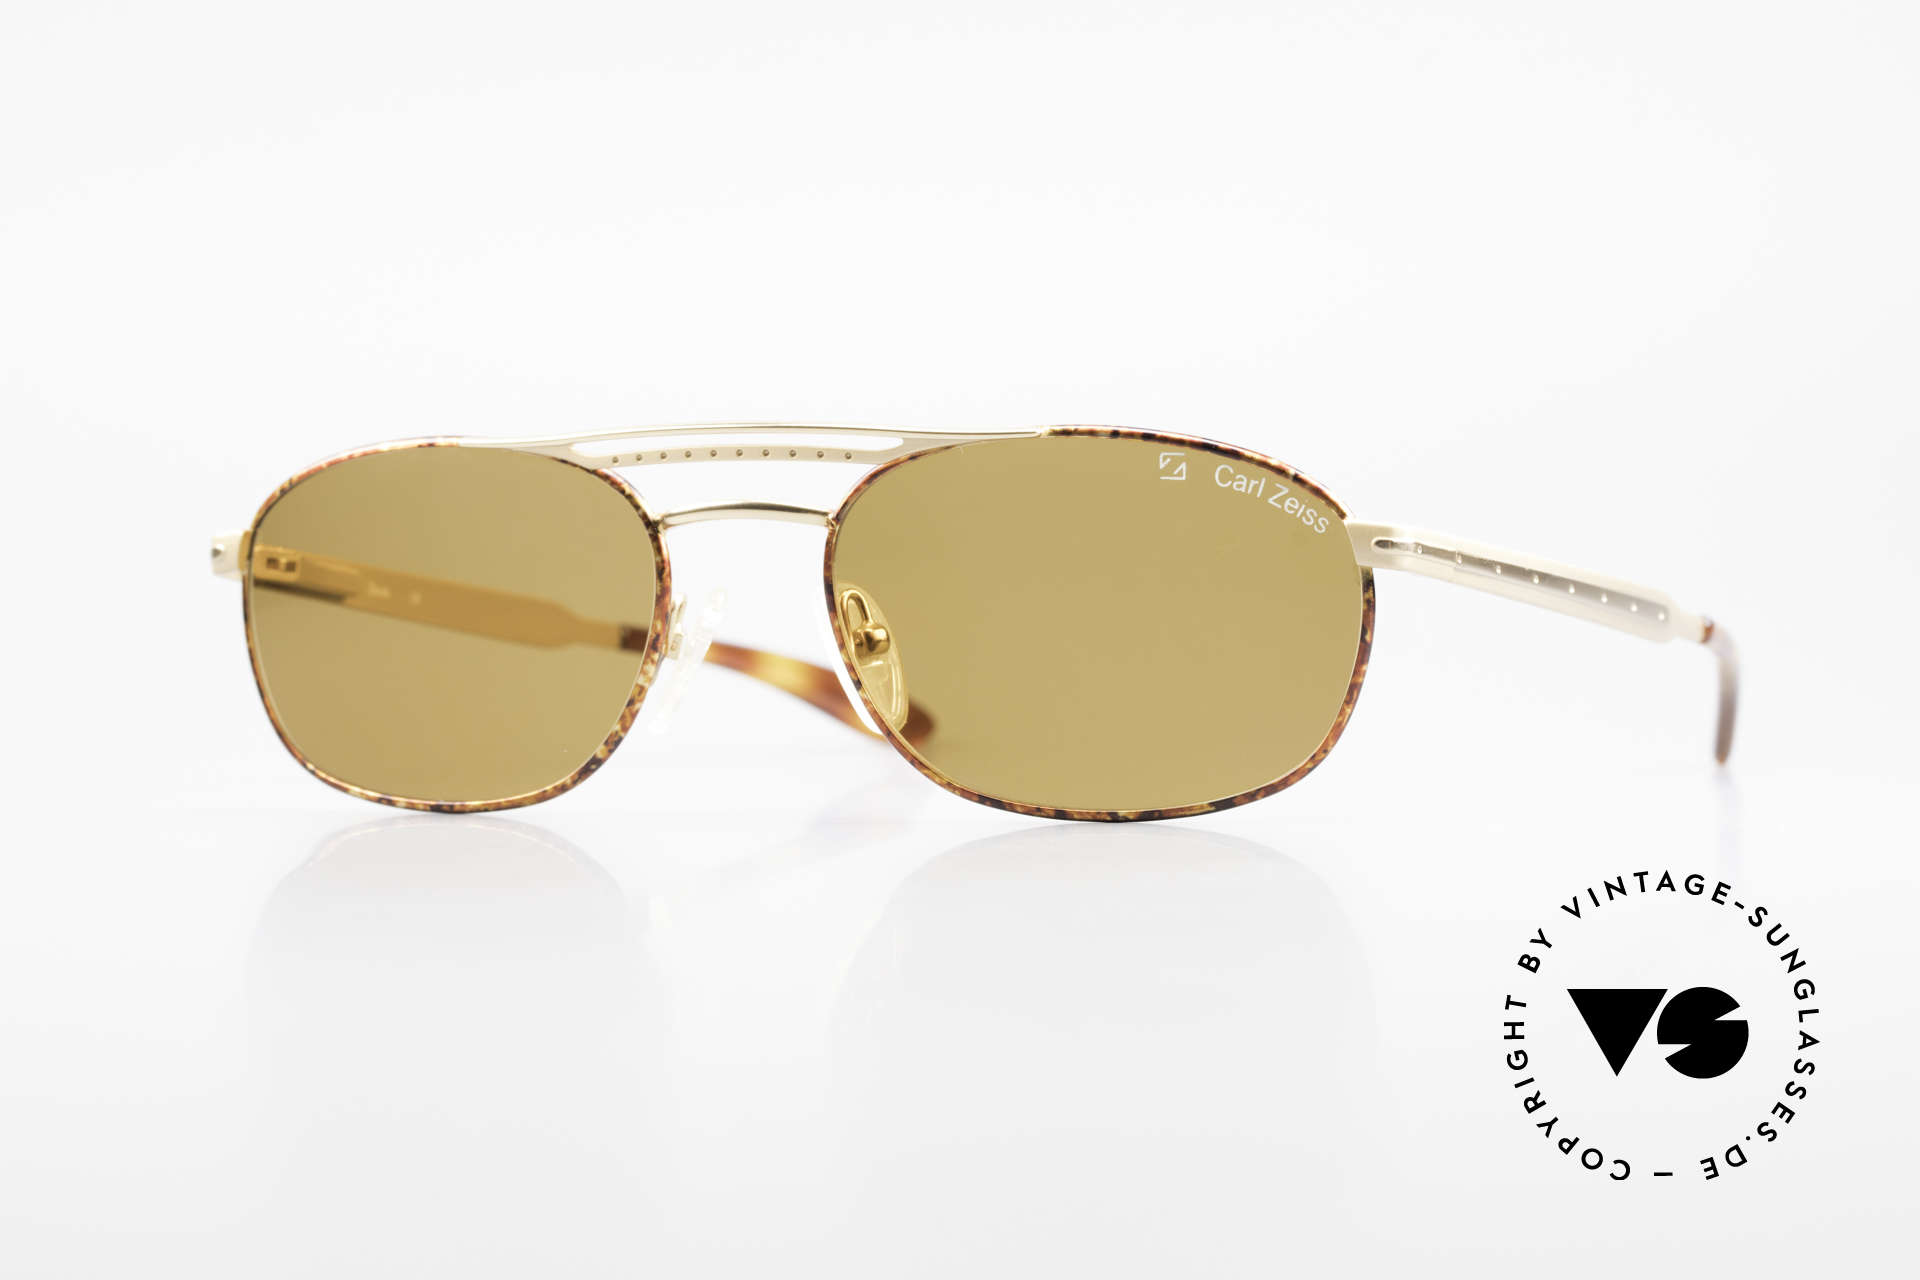 Zeiss 9426 90's Premium Sunglasses, old vintage 'quality sunglasses' by Zeiss, Germany, Made for Men